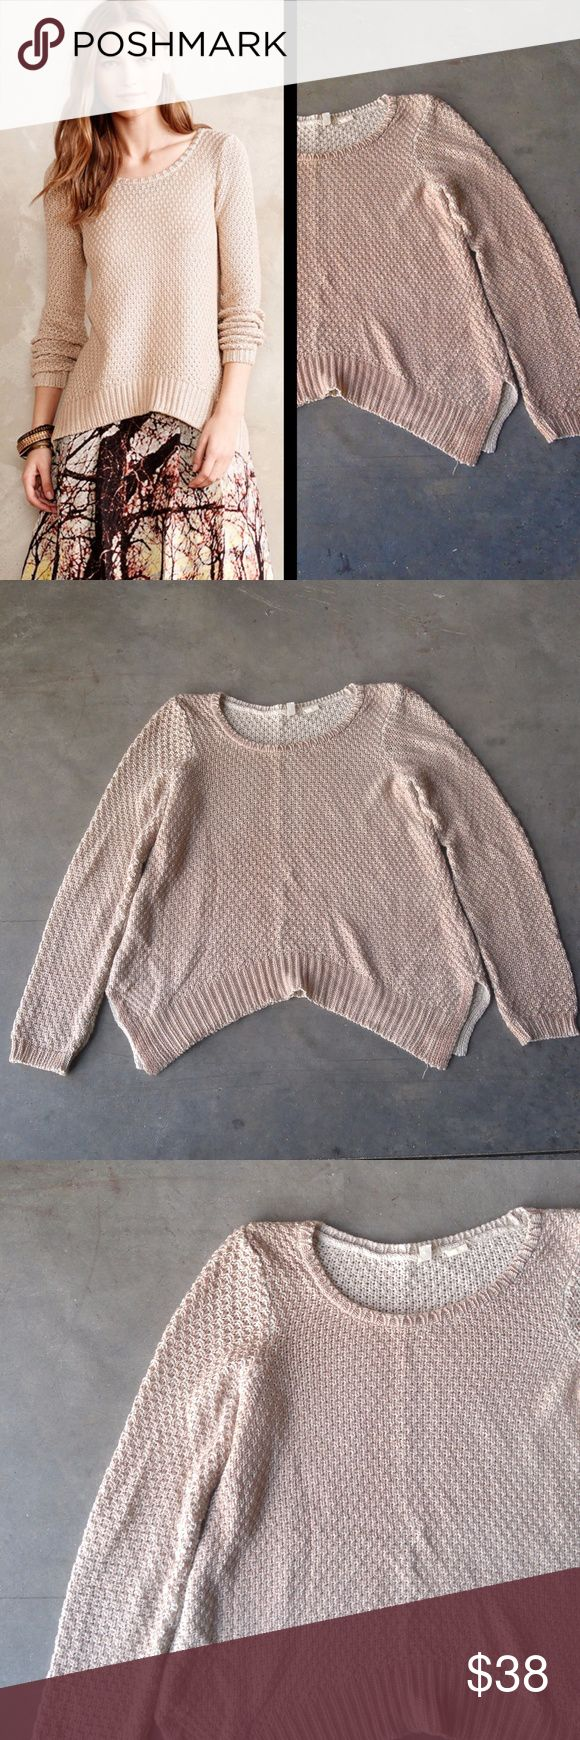 Moth Shimmer Stitch Pullover in Natural Moth sweater from Anthropologie, size medium, in excellent condition! Medium-weight knit with metallic bronze throughout. Longer sides and shorter center. Side slits at bottom hem, scoop neck, and full-length sleeves. Cover photo from Anthro website. No trades. No modeling. Make a reasonable offer. Thanks! Anthropologie Sweaters Crew & Scoop Necks